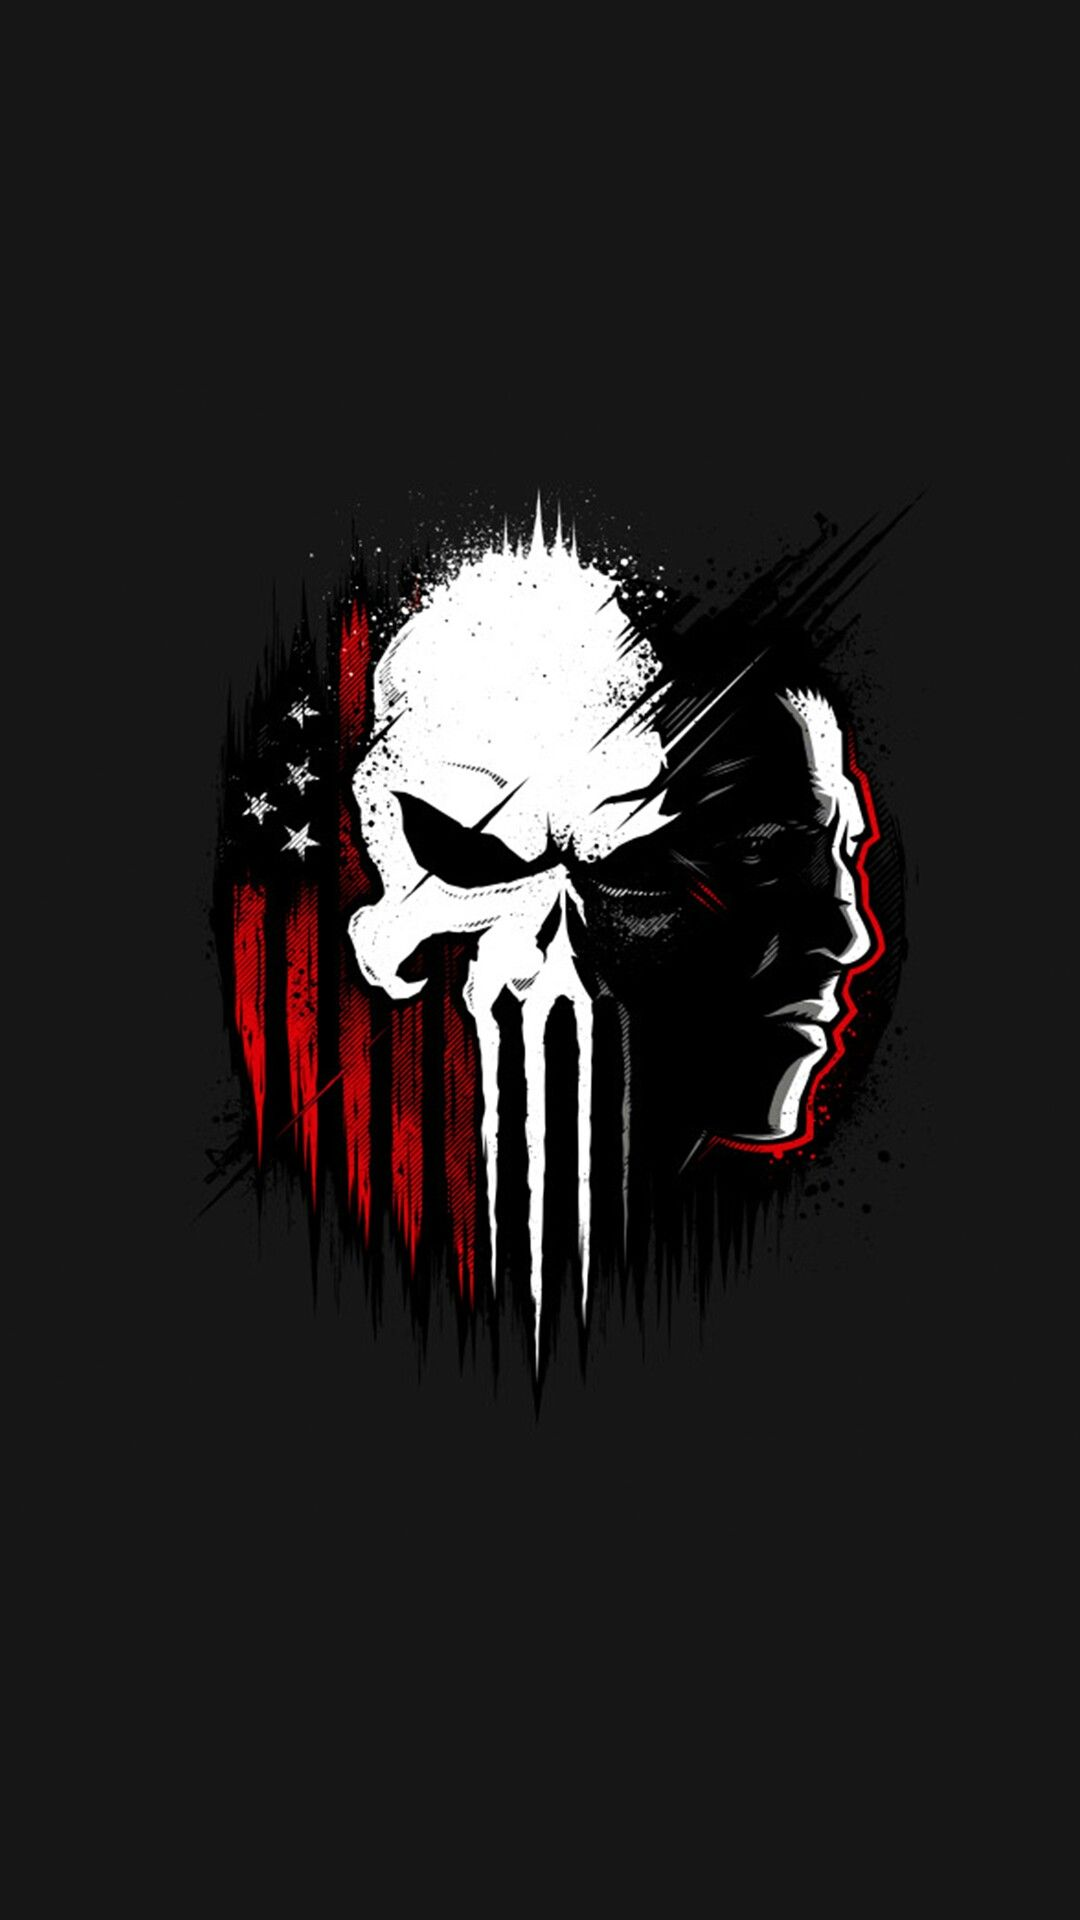 Osumwalls Marvel Comics Wallpaper Punisher Artwork Superhero Wallpaper